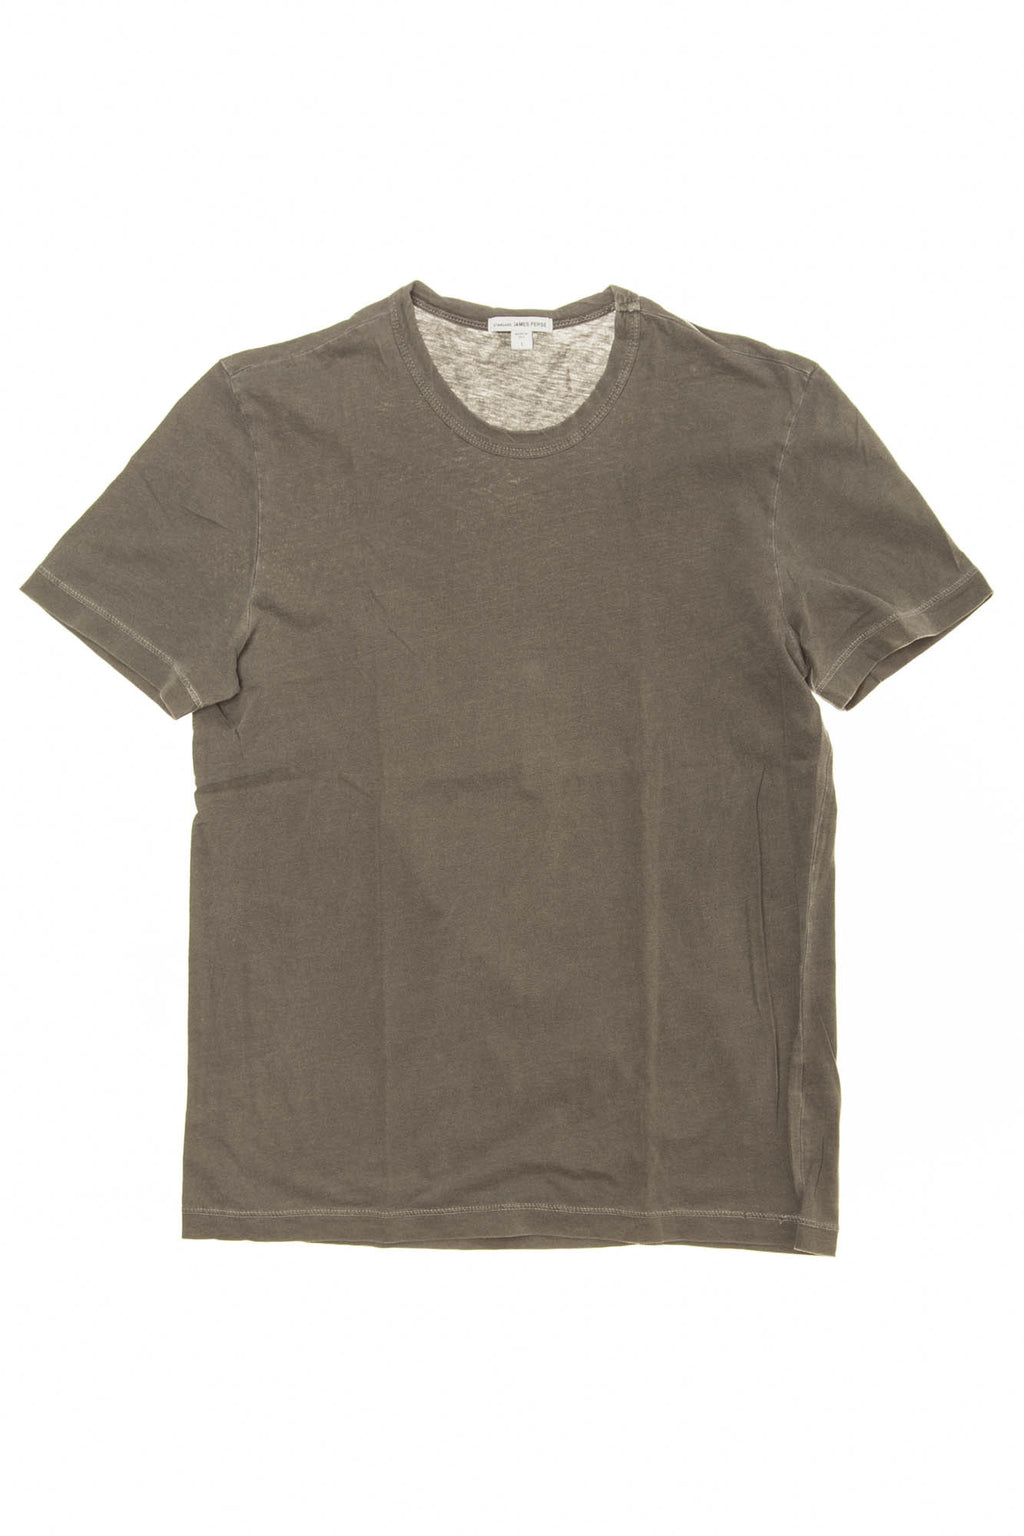 James Perse - Brown Short Sleeve TShirt - 1